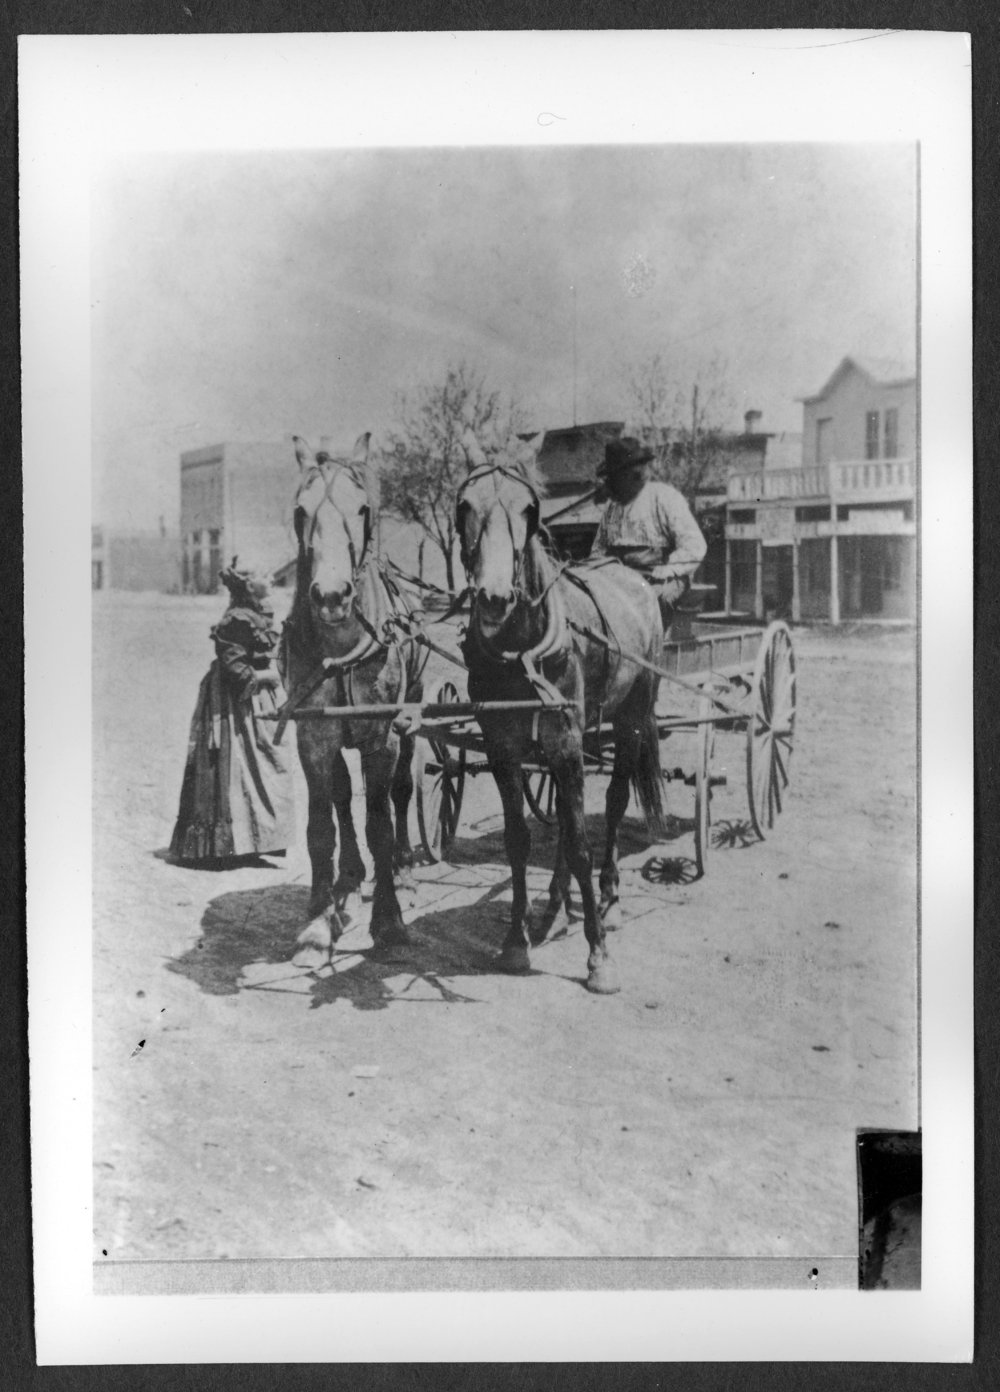 Scenes of Sherman County, Kansas - Mrs. Aver on H.H. Aver in front of a store.